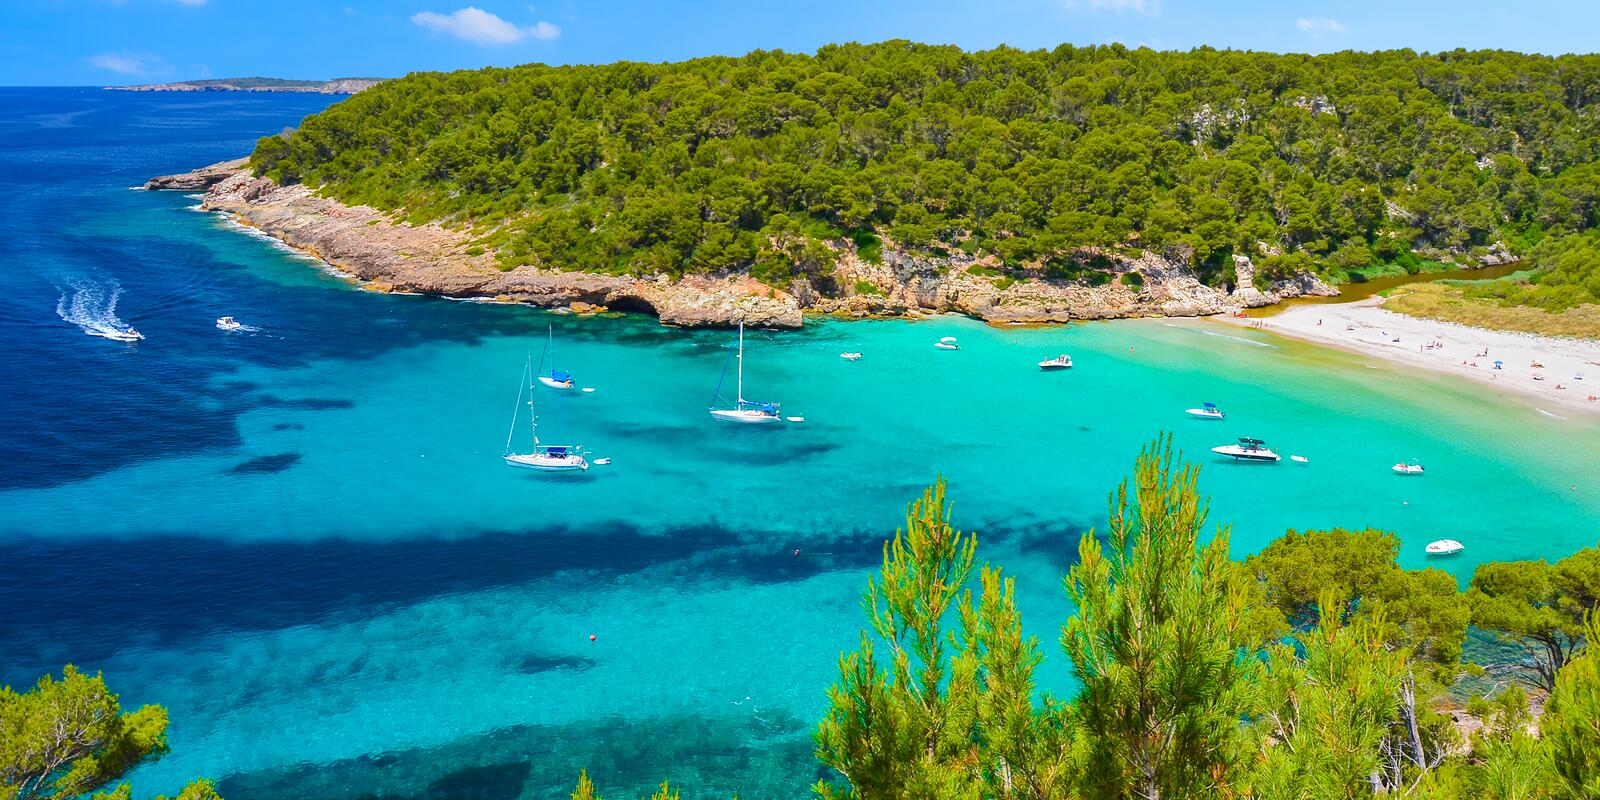 A week of relaxation and silence in the unspoiled sea of ​​Menorca